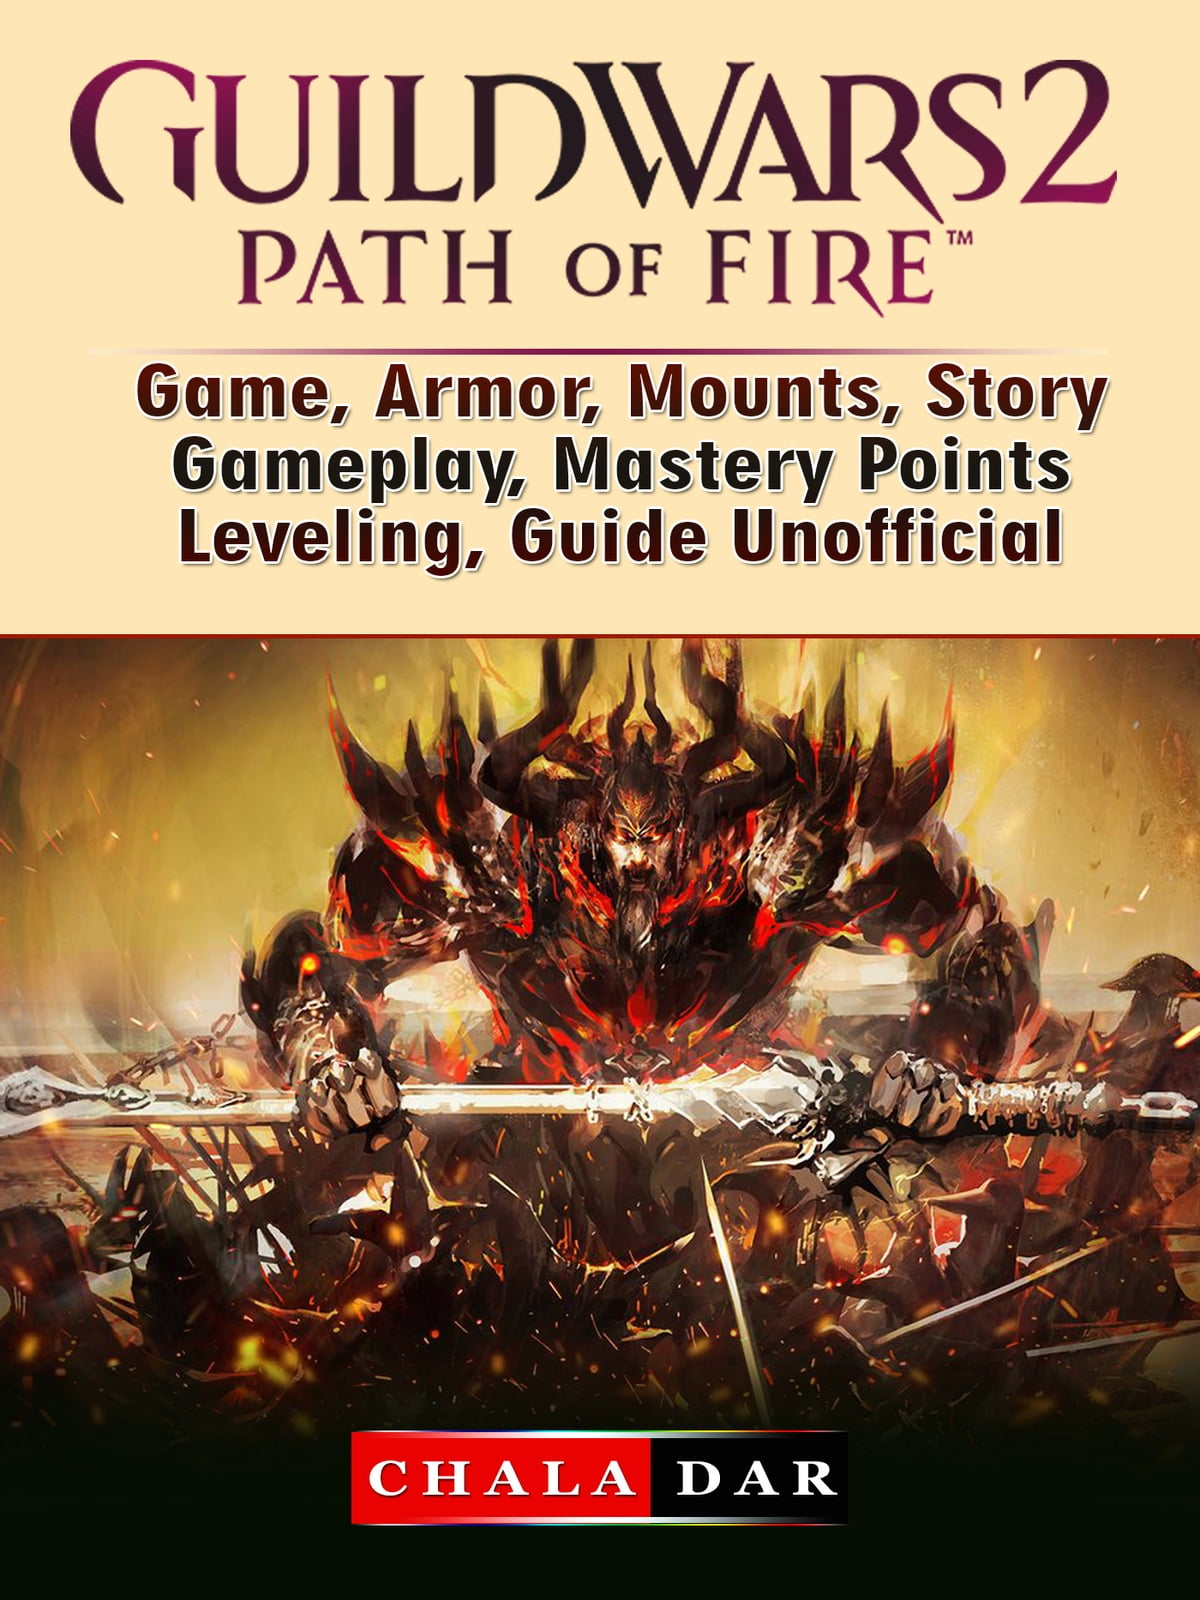 Guild Wars 2 Path of Fire Game, Armor, Mounts, Story, Gameplay, Mastery  Points, Leveling, Guide Unofficial ebook by Chala Dar - Rakuten Kobo